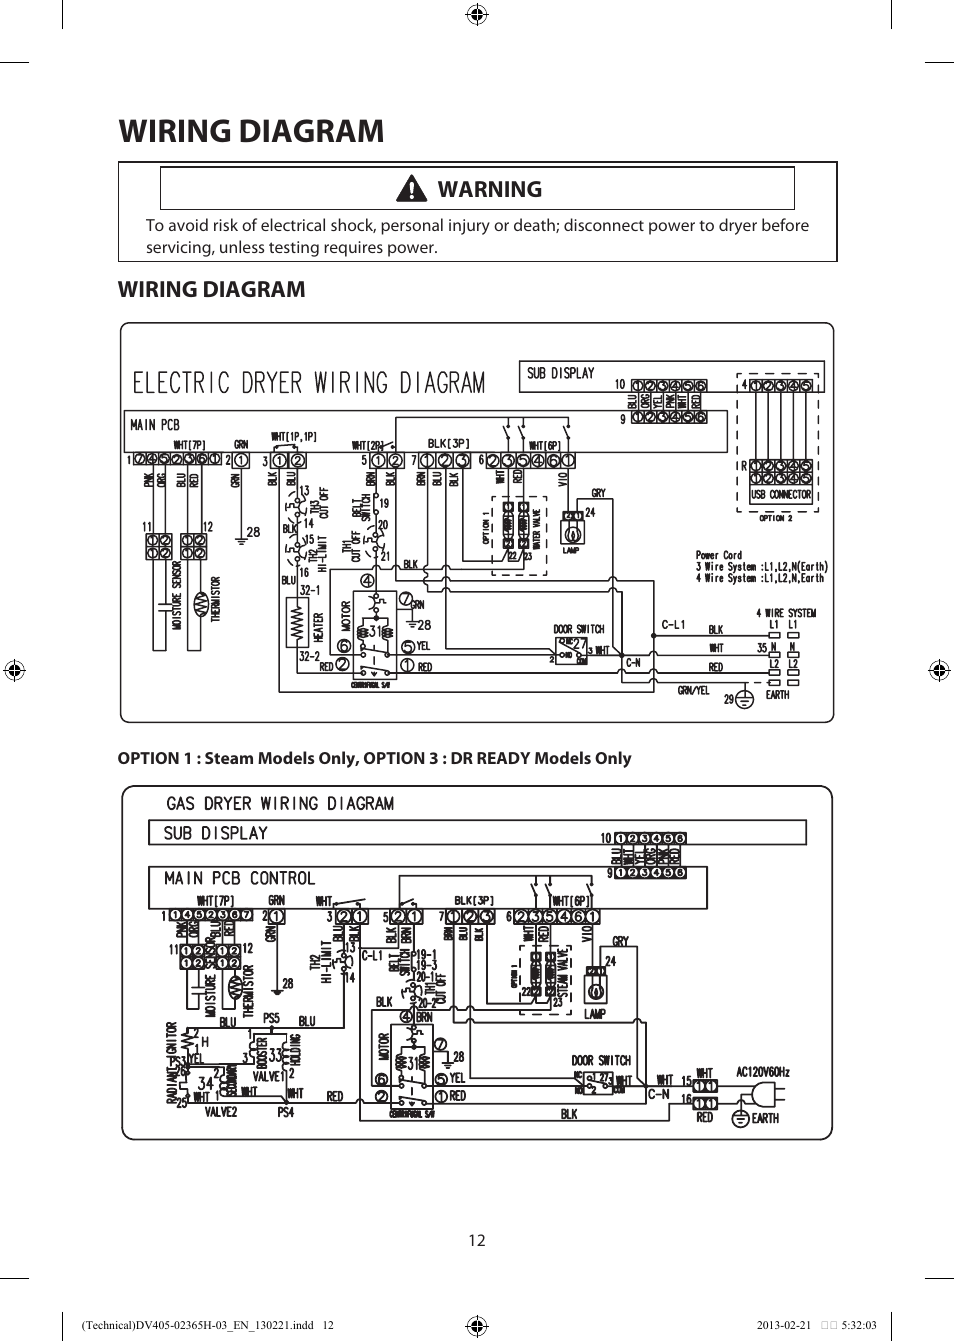 Whelen Hhs2200 Wiring Diagram from www.manualsdir.com